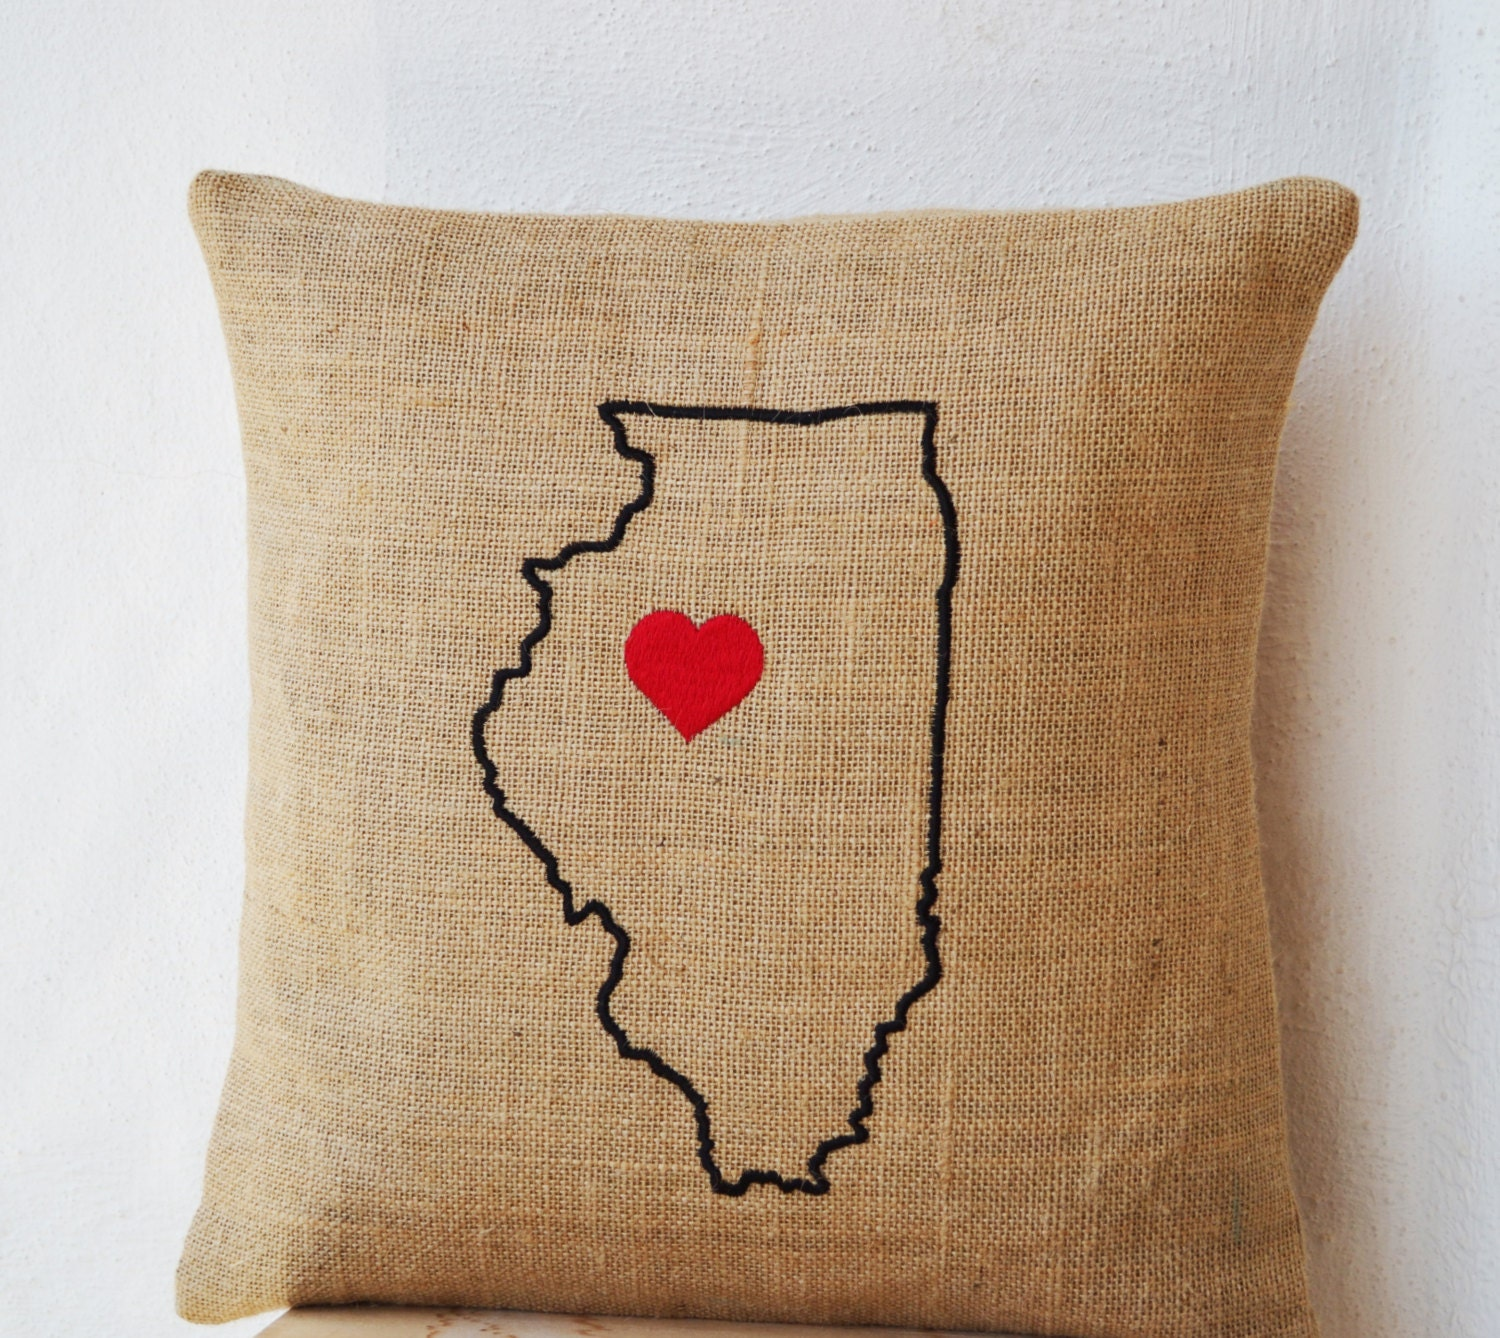 us souvenir statepillows images state crafts pillow embroidered best of u pillows s hawaii states catstudio on pinterest